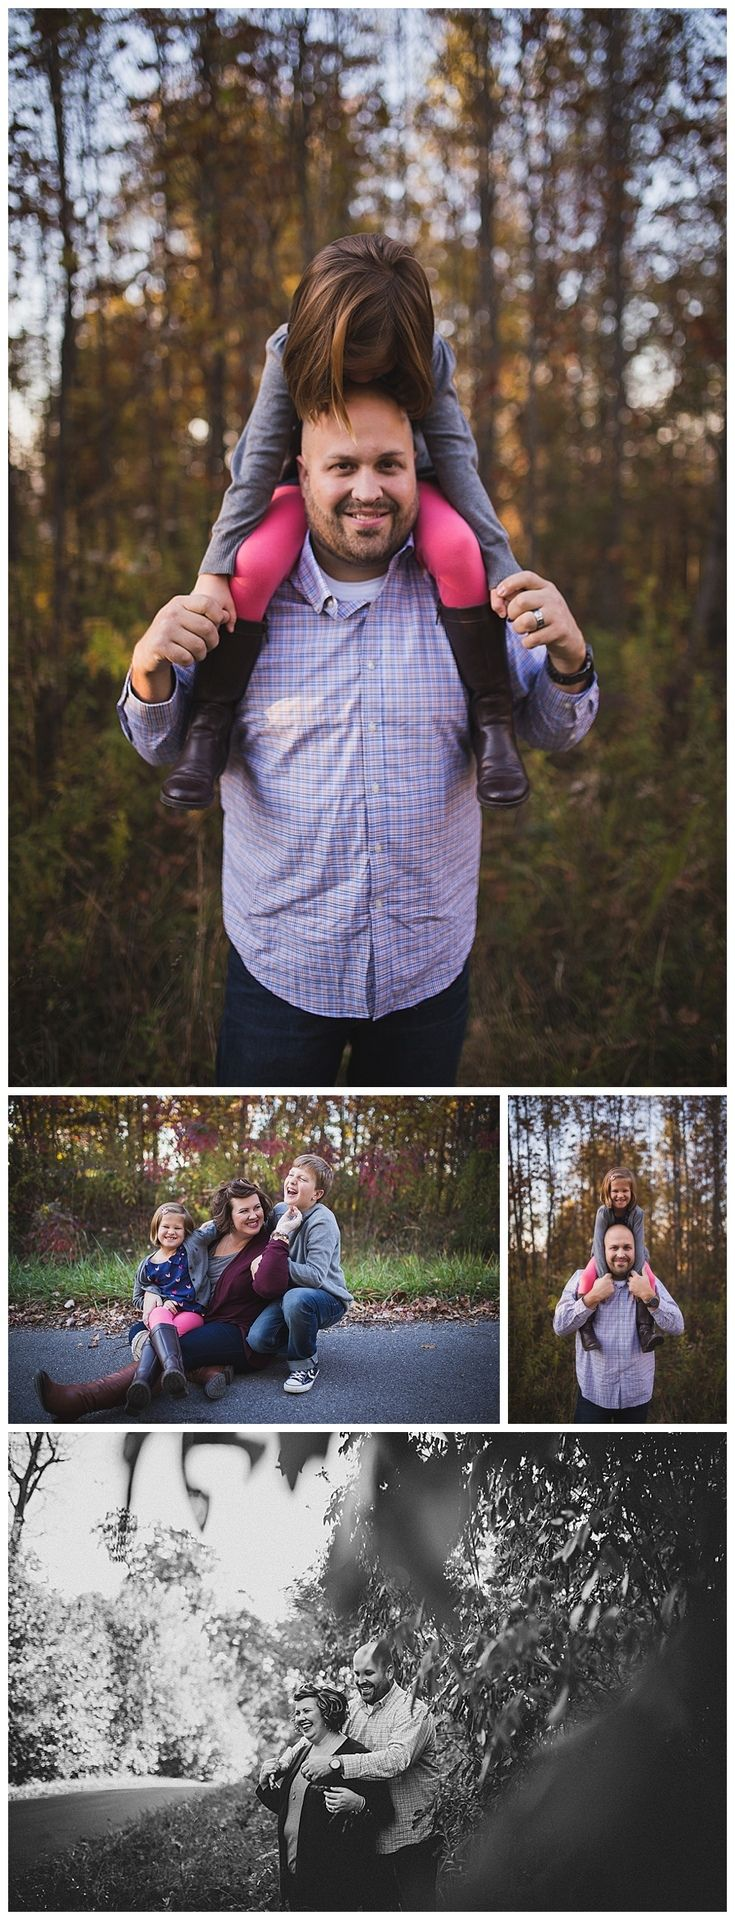 Emily Rogers: Photographer | Creative Portrait + Wedding Photography in Southwest VA and Northeast Tennessee | beautiful fall family photos in the Appalachian mountains